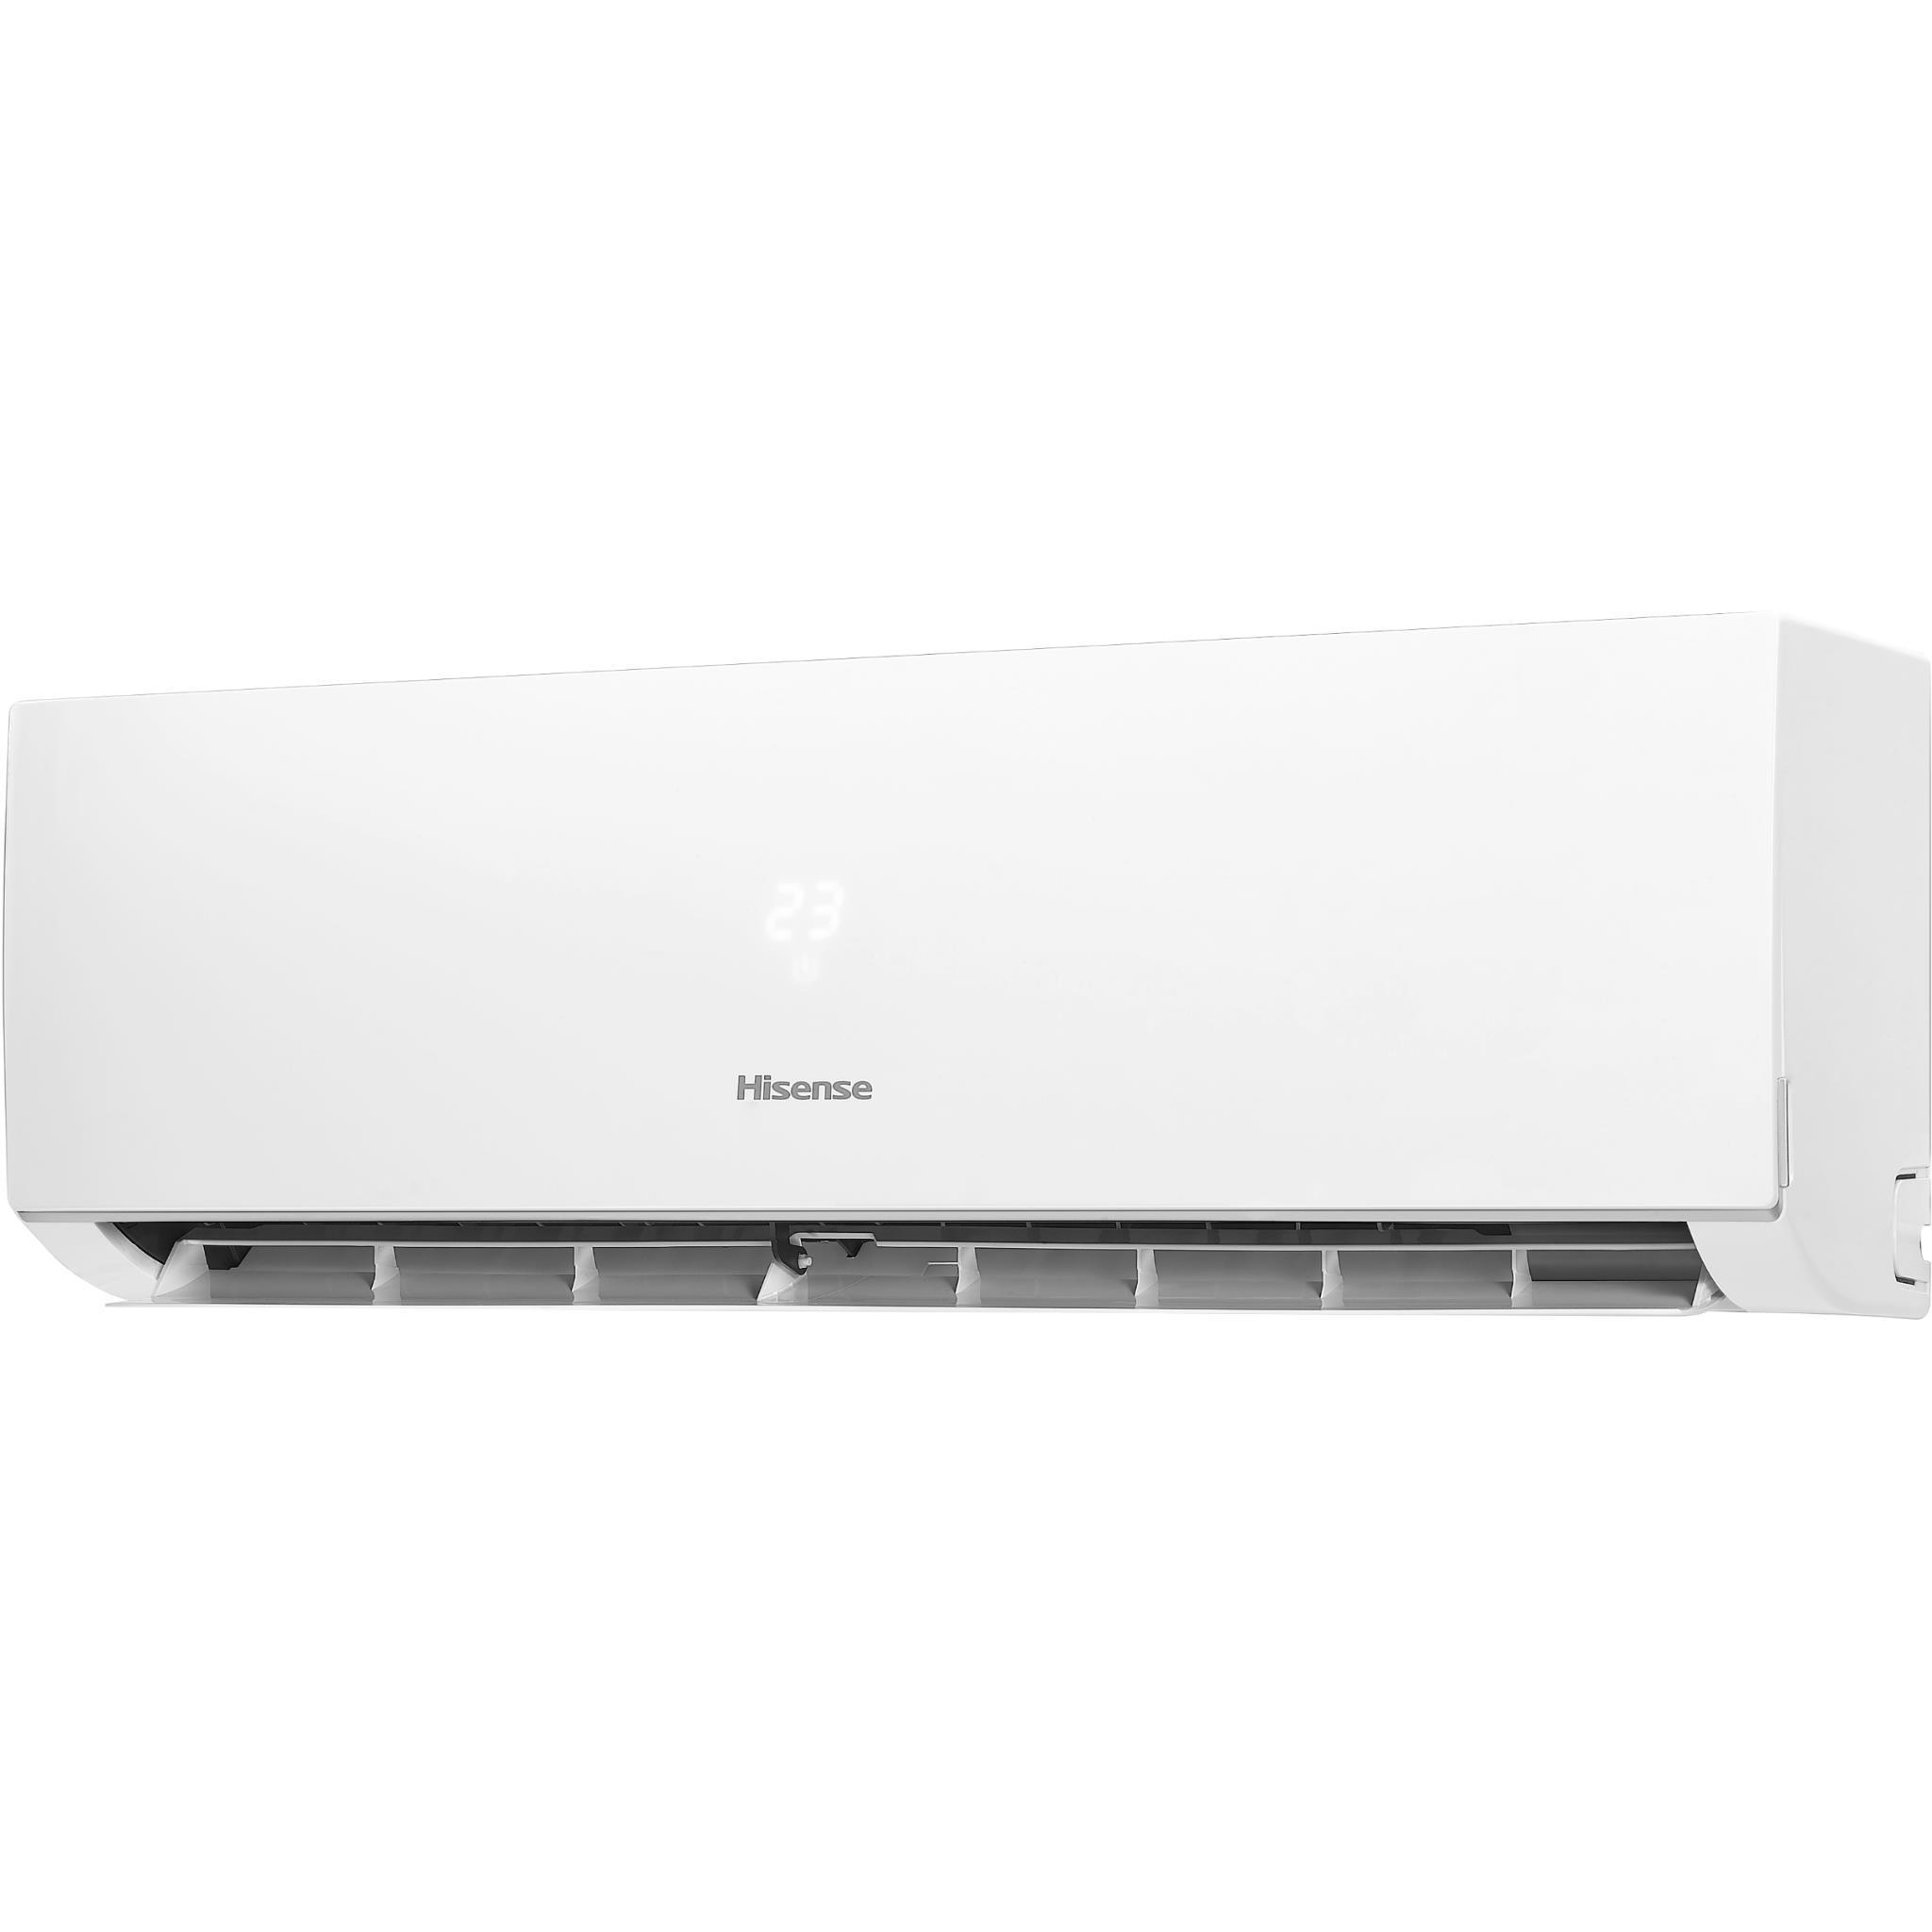 Hisense HSA50C 5kW Split System Cooling Only Air Conditioner